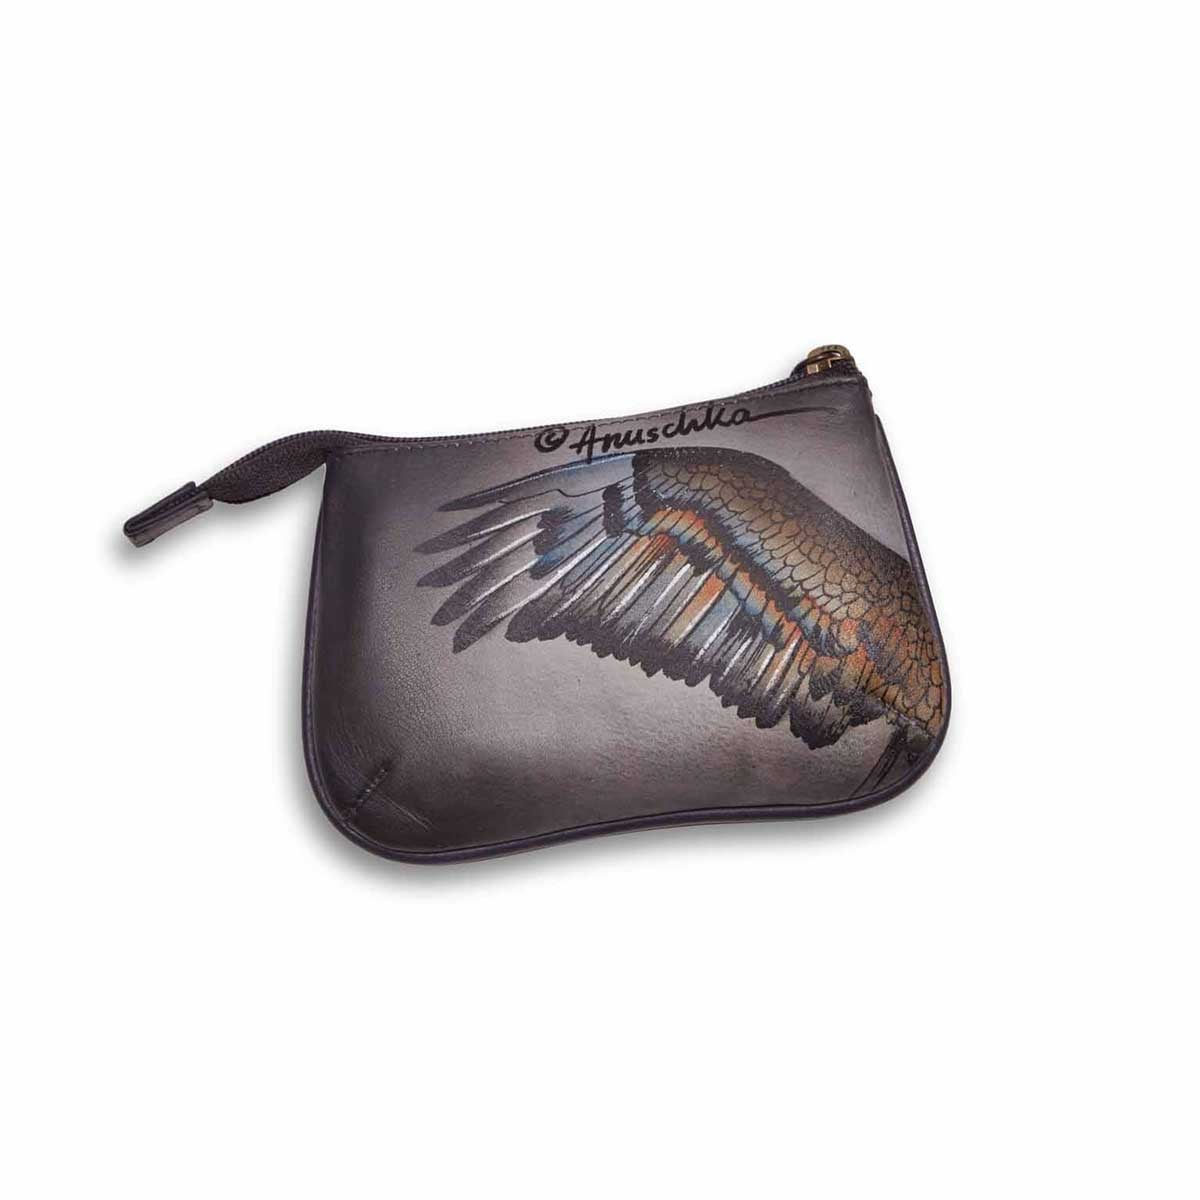 Painted lthr American Eagle coin purse